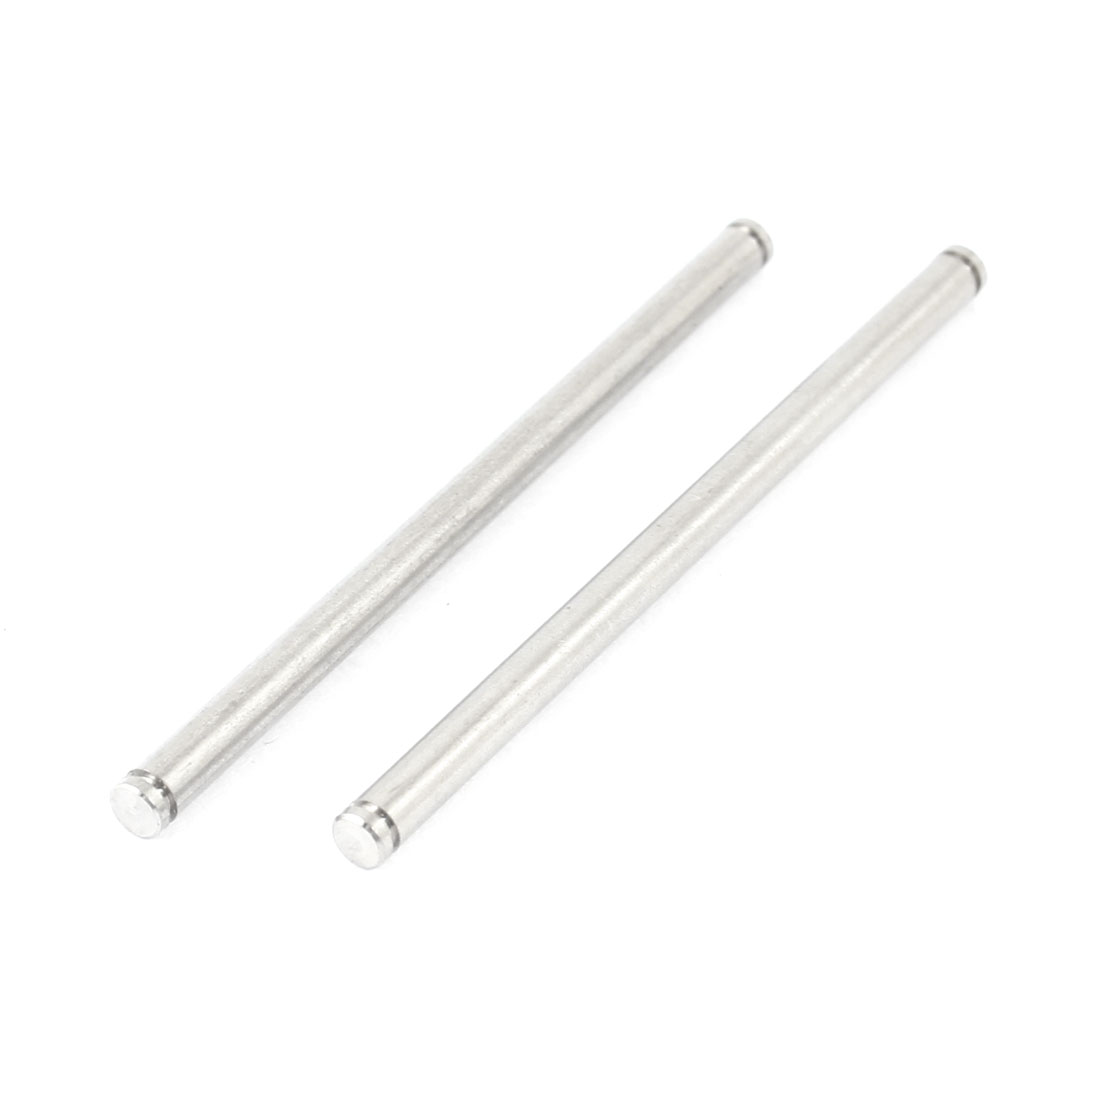 2Pcs 02063 Steel Rear Lower Arm Round Pin A 54mm for RC 1/10 Car 94123